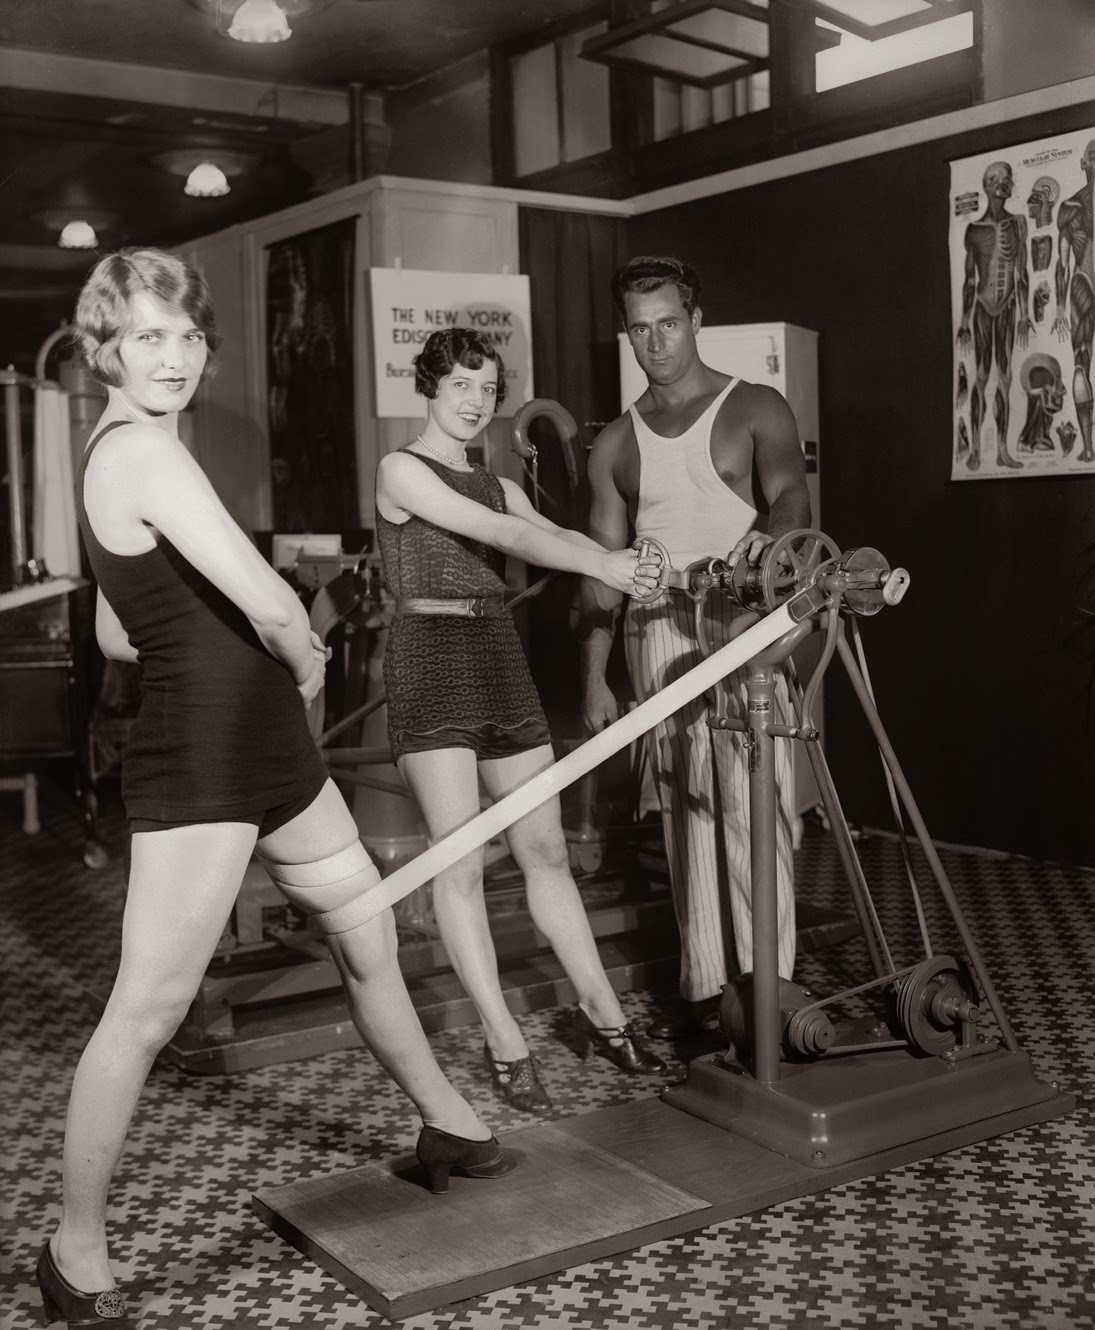 photos of women in workout gear in 1930s pix i am bored